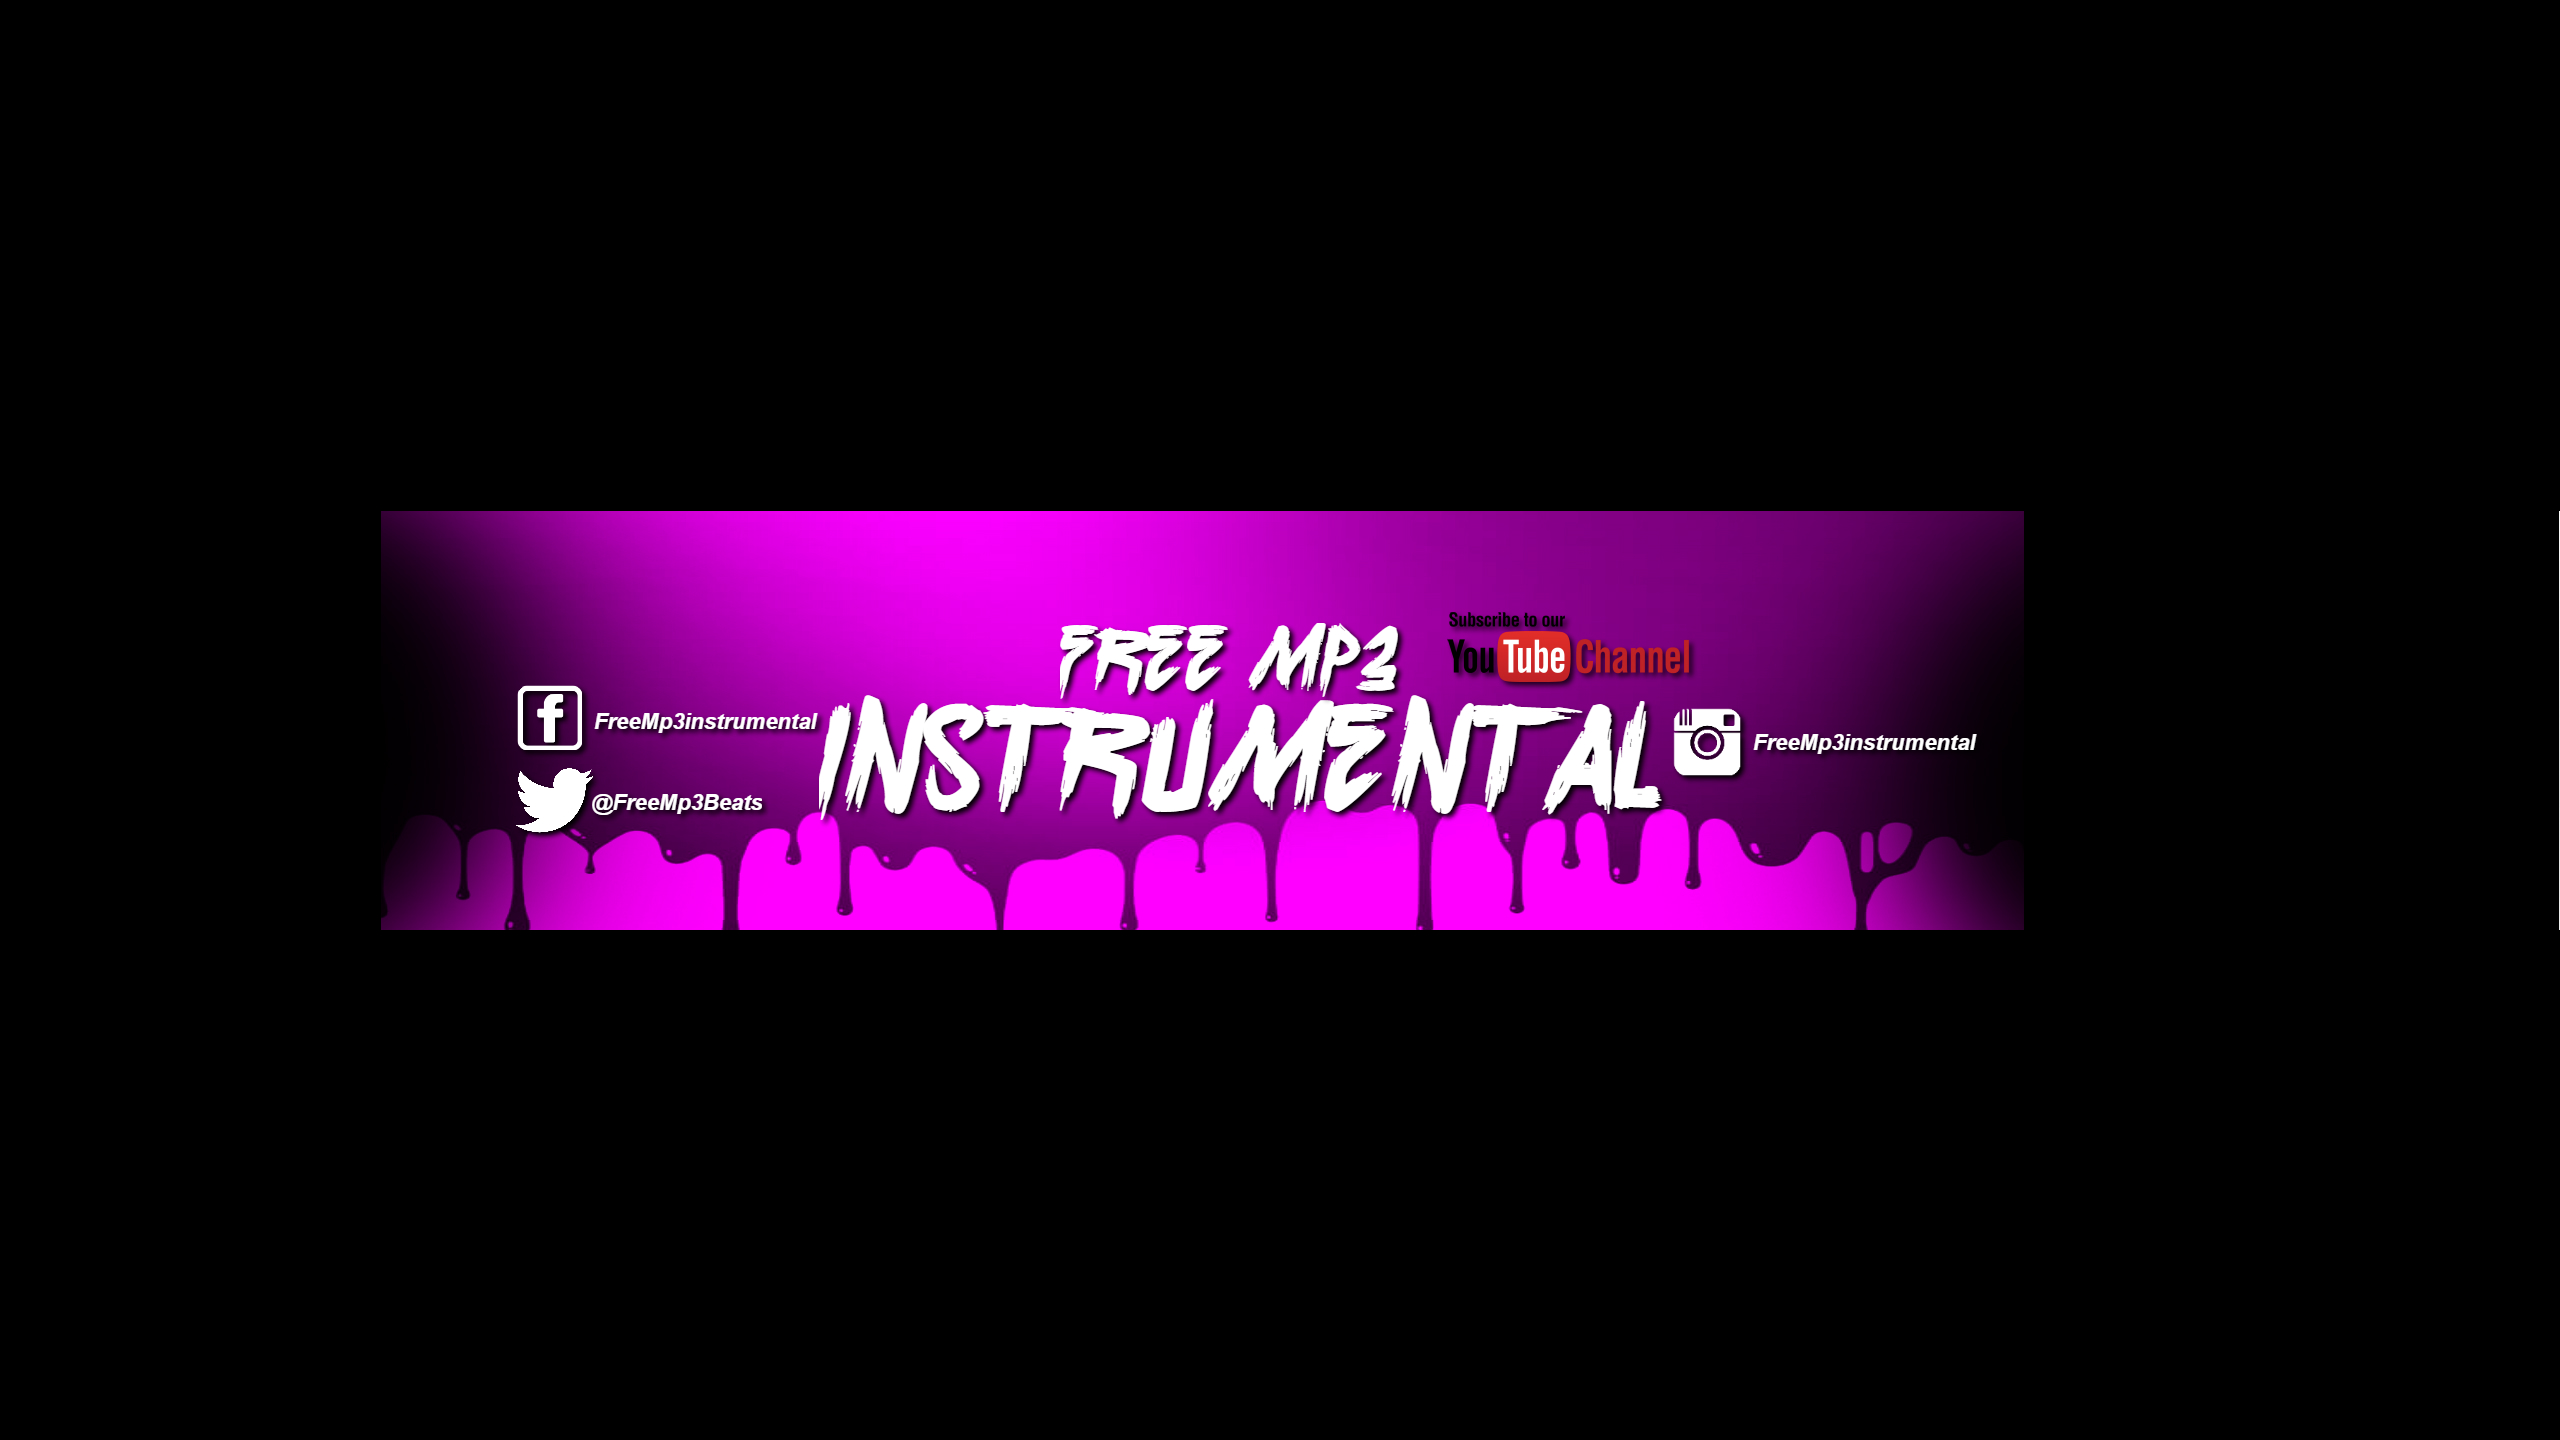 free download of instrumental music mp3